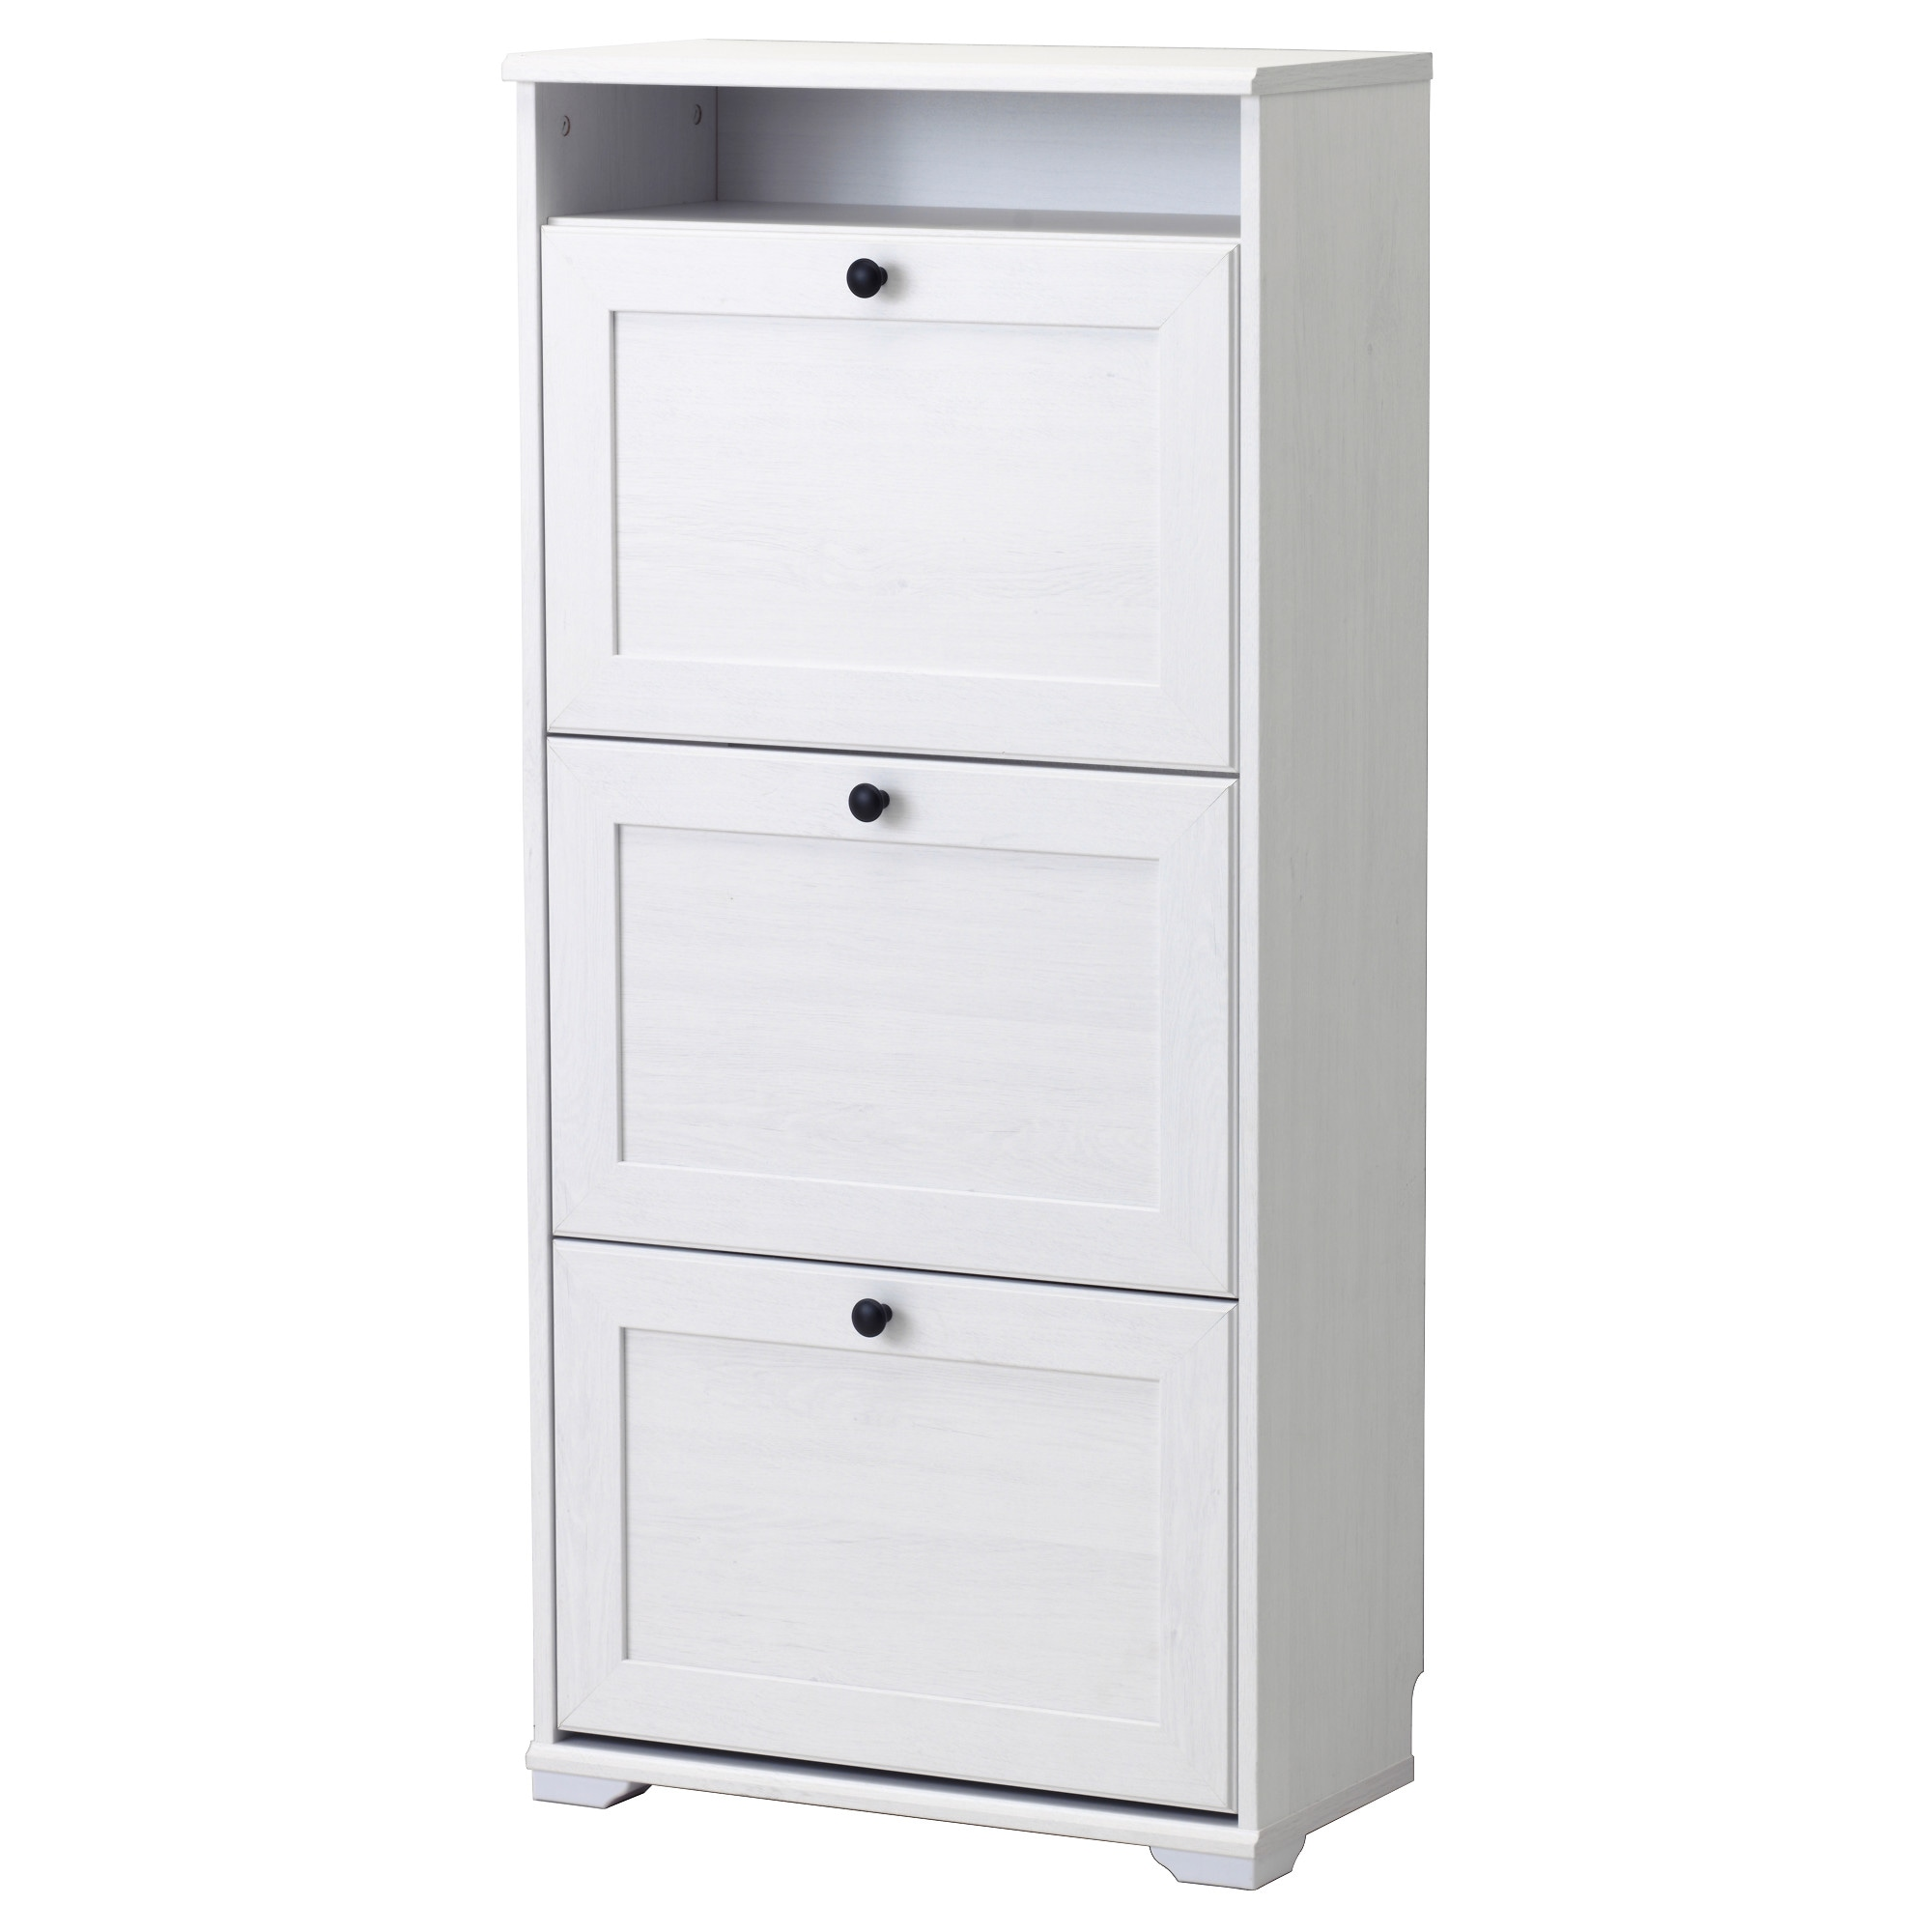 Design Shoe Stand Ikea brusali shoe cabinet with 3 compartments white ikea